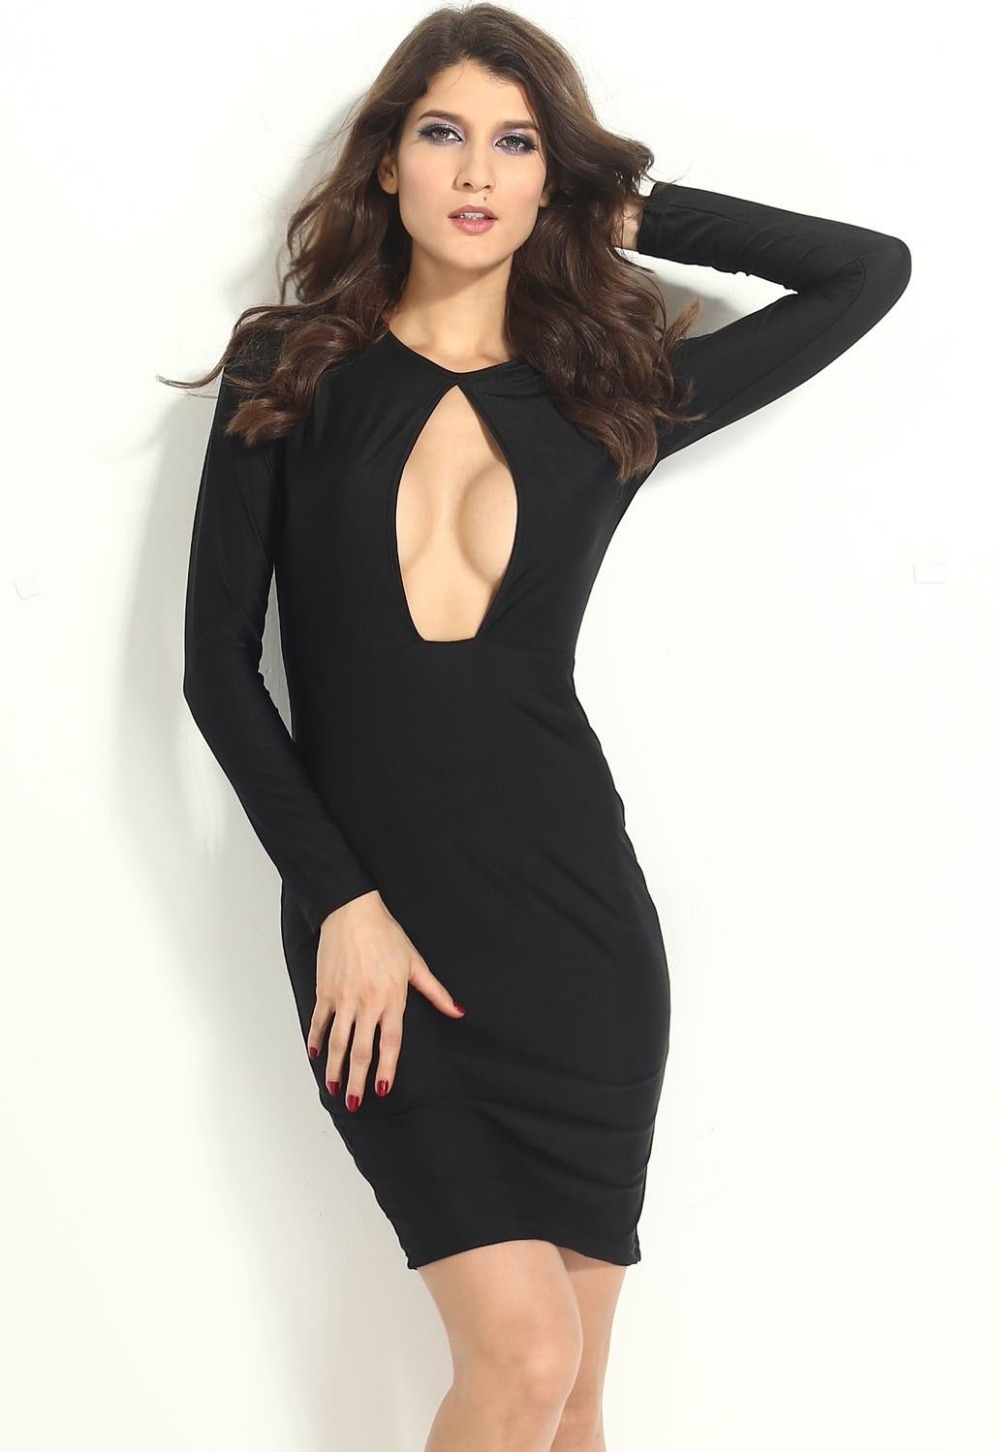 LITTLE BLACK PARTY DRESS - Nasha Bendes